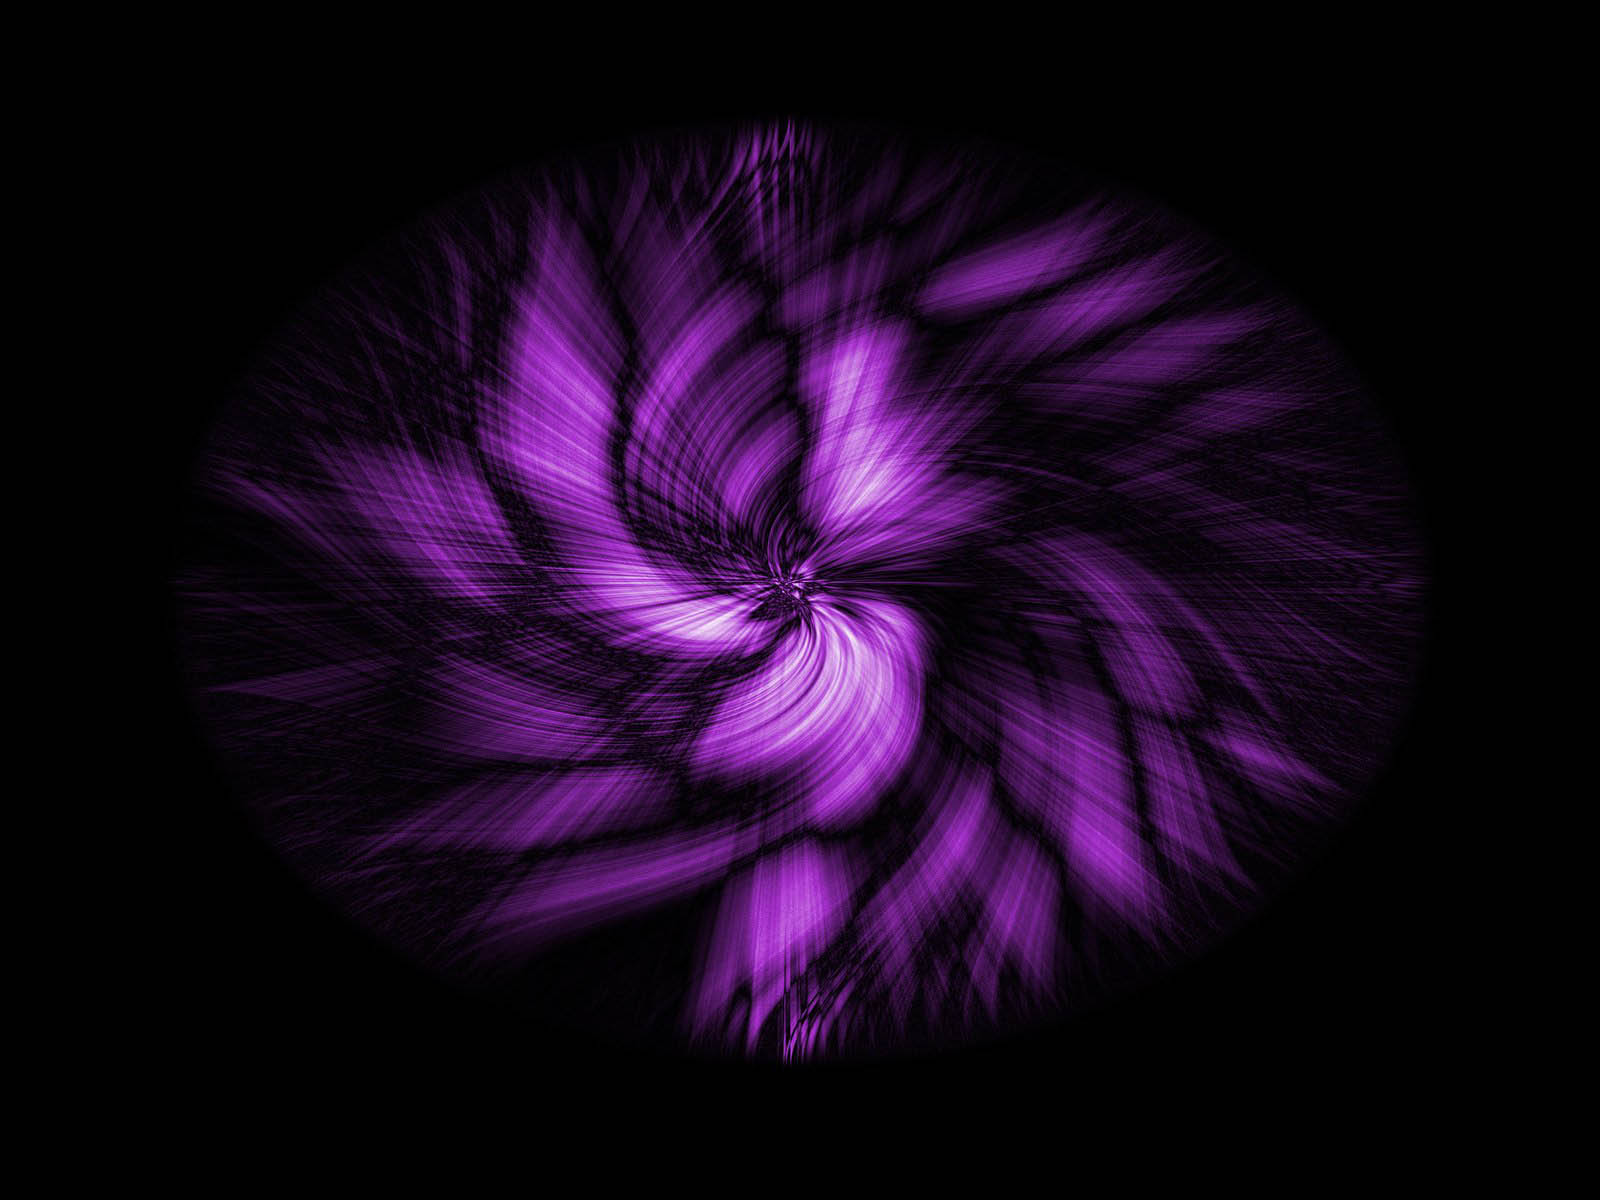 Abstract Desktop Wallpapers Purple Backgrounds